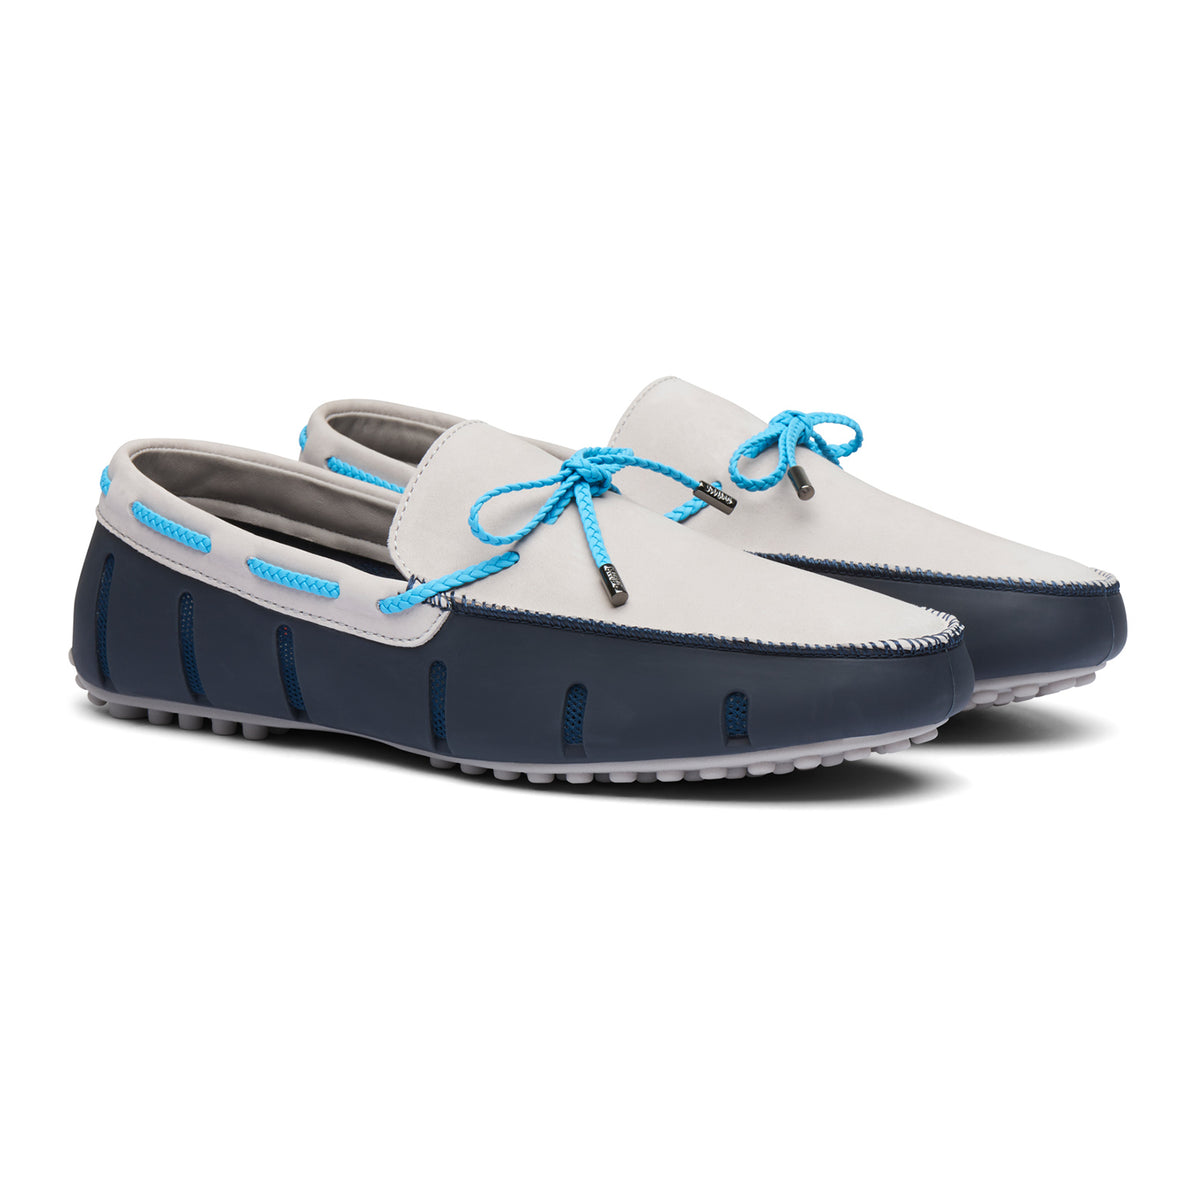 Braided Lace Lux Loafer Driver Nubuck - background::white,variant::Navy/Alloy